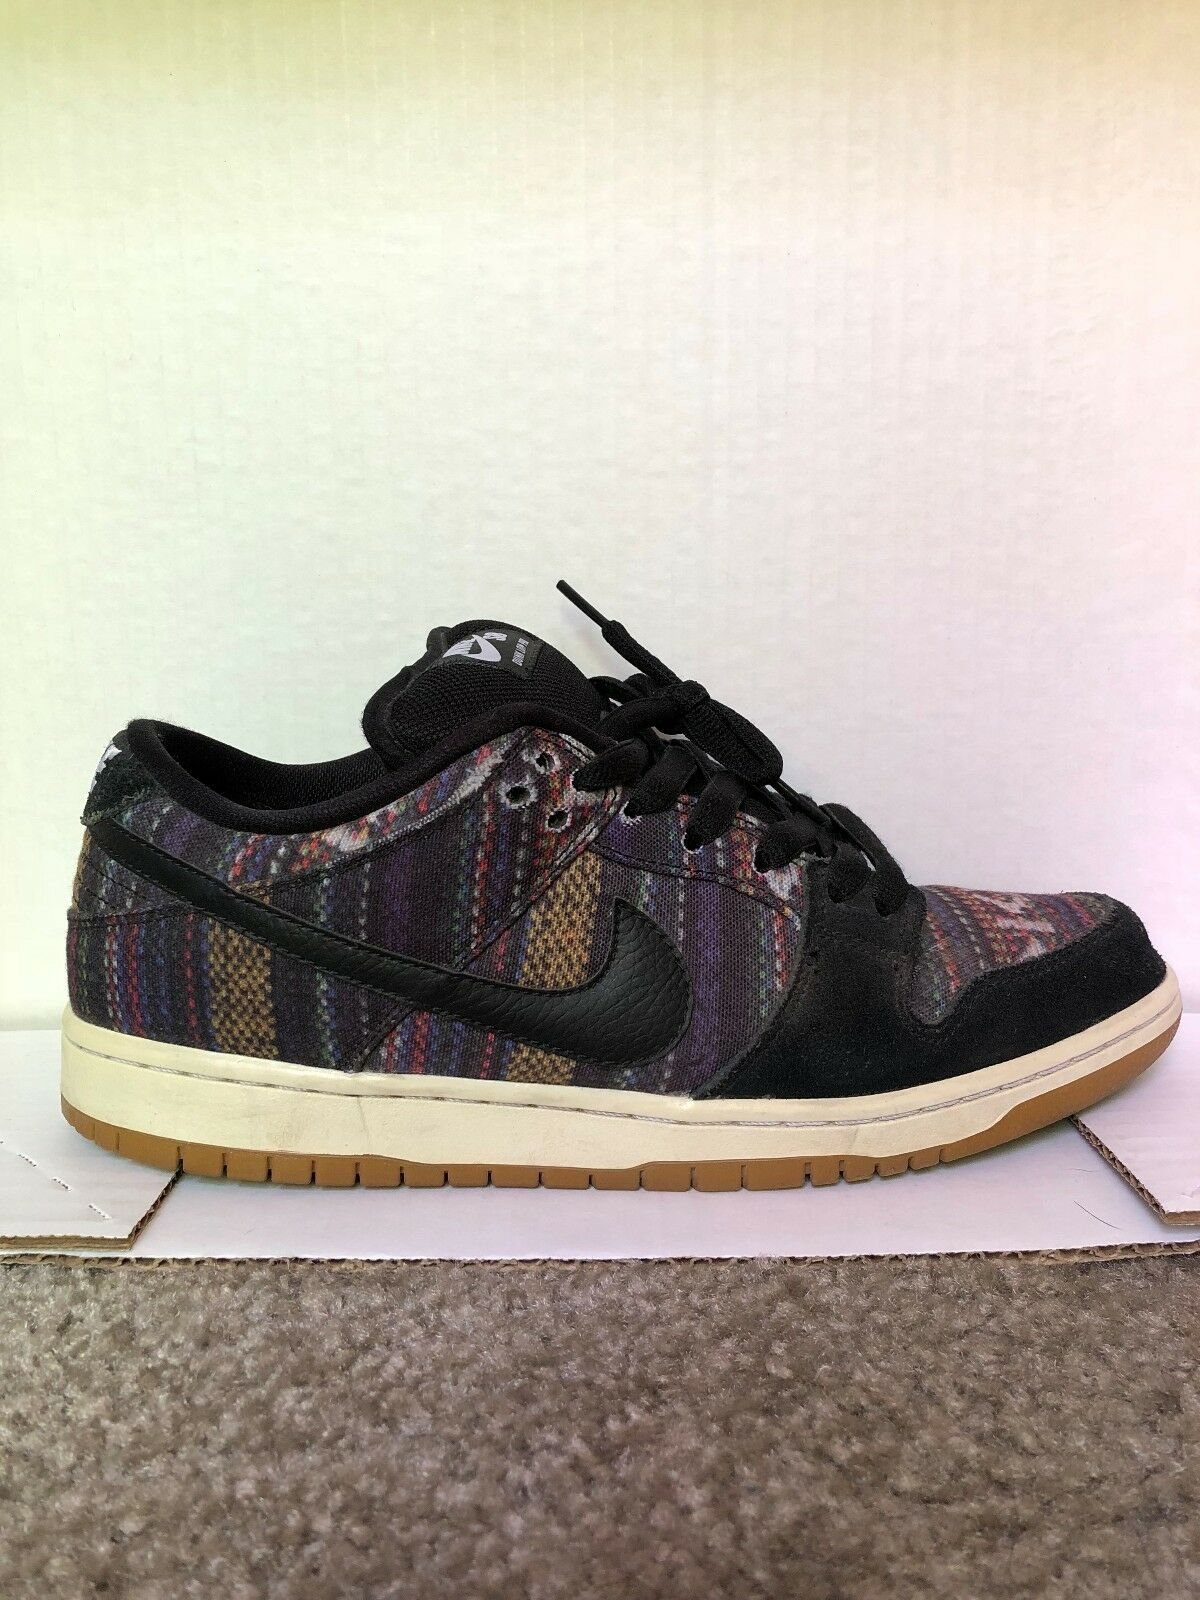 PRE OWNED Nike Dunk Low Premium SB QS 9.5 504750 901